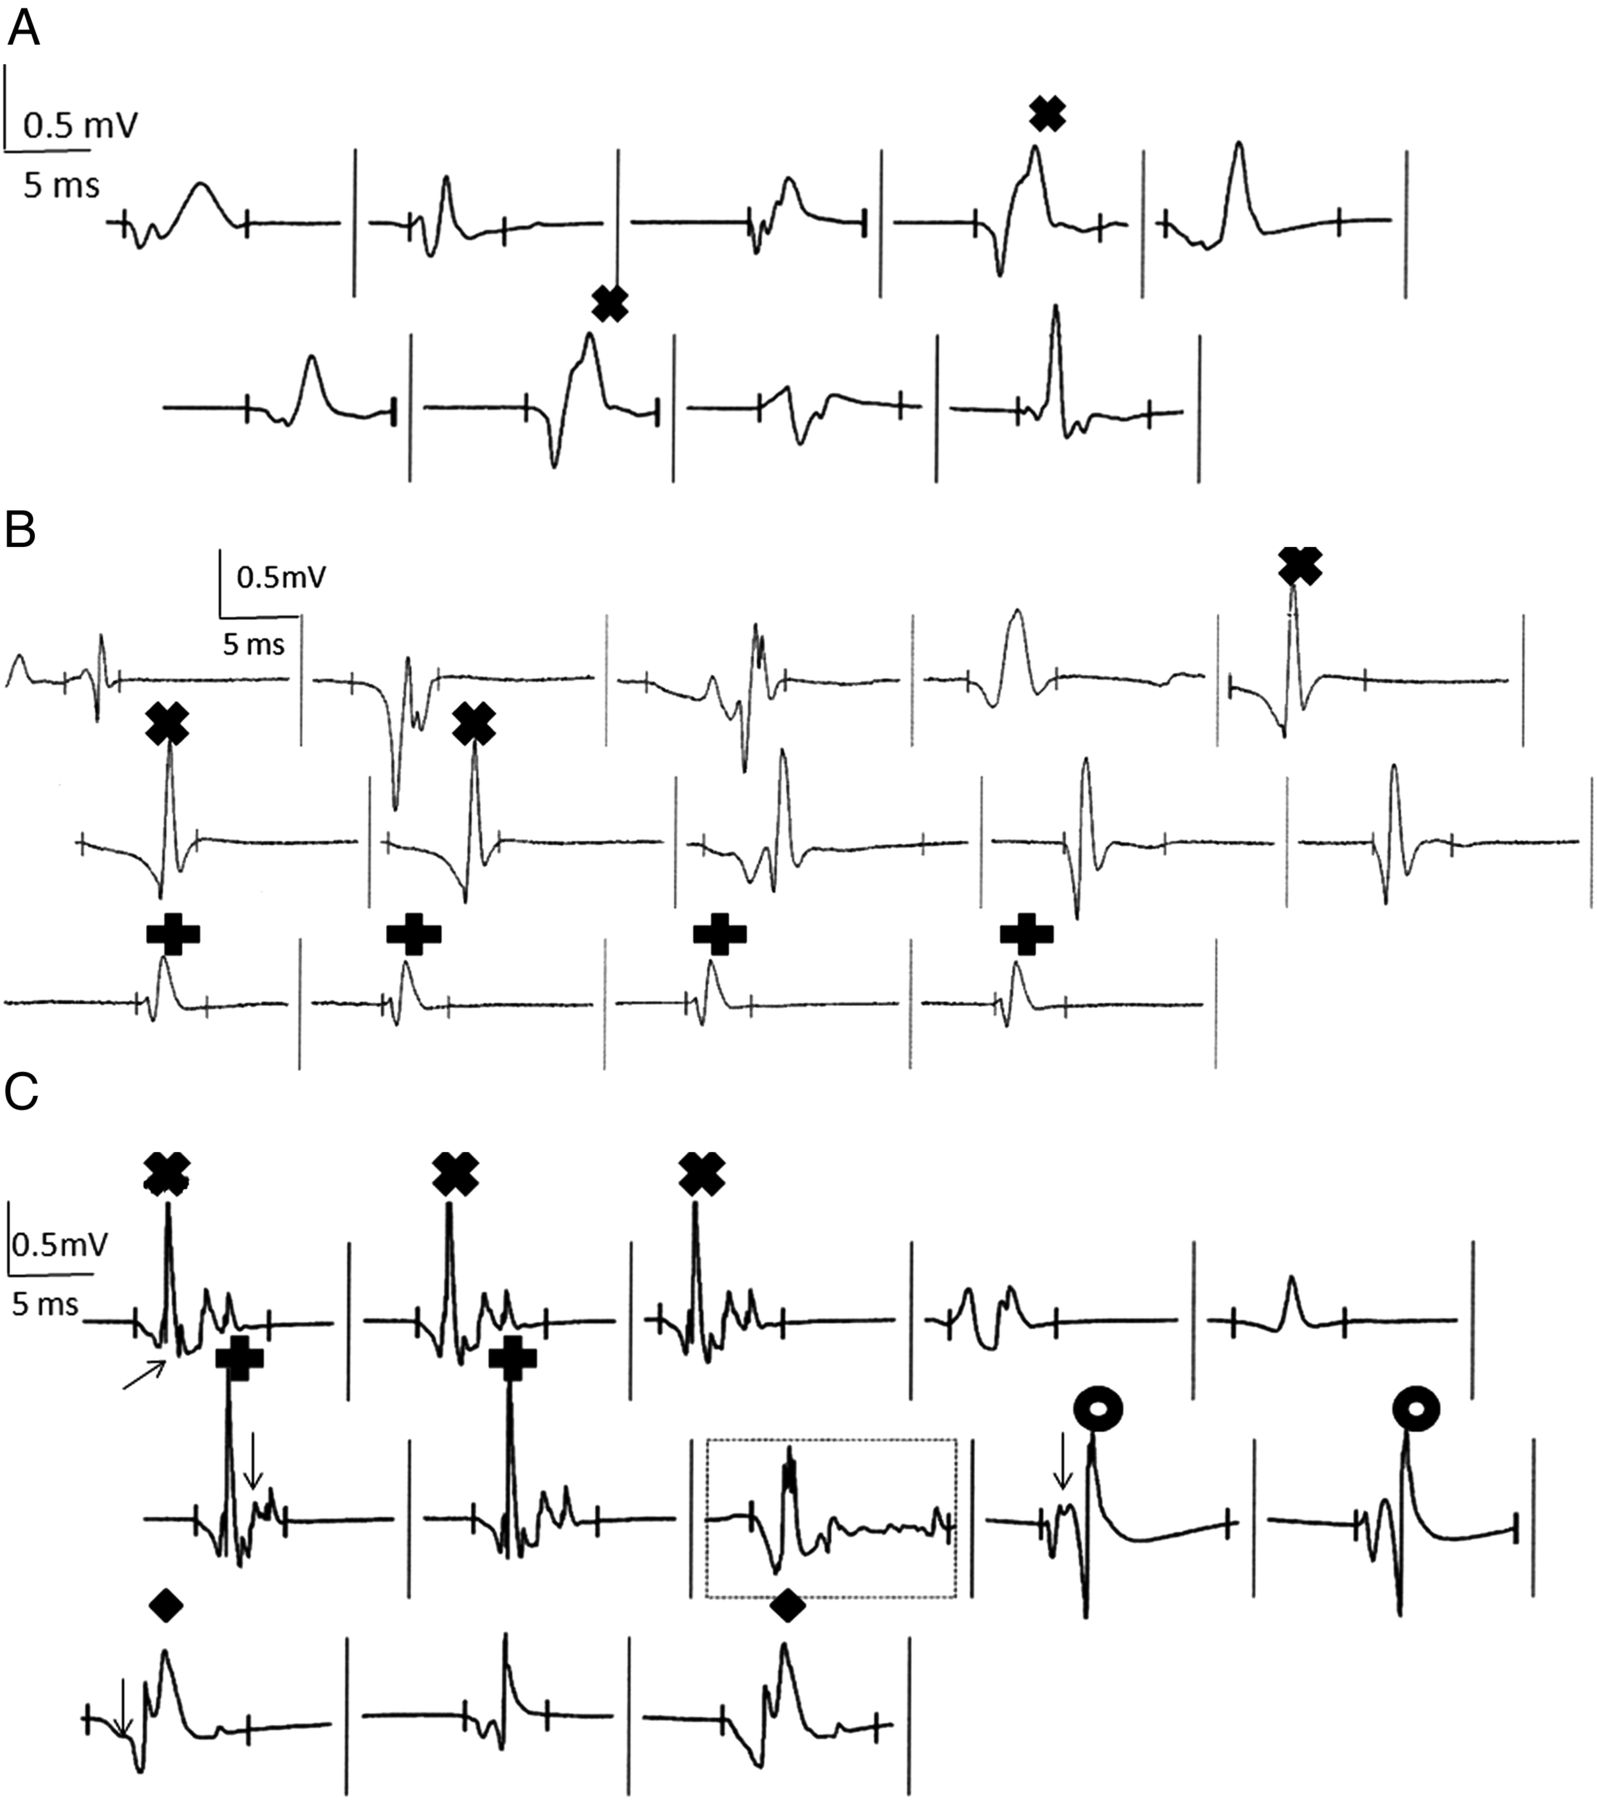 Fasciculation potentials and earliest changes in motor unit